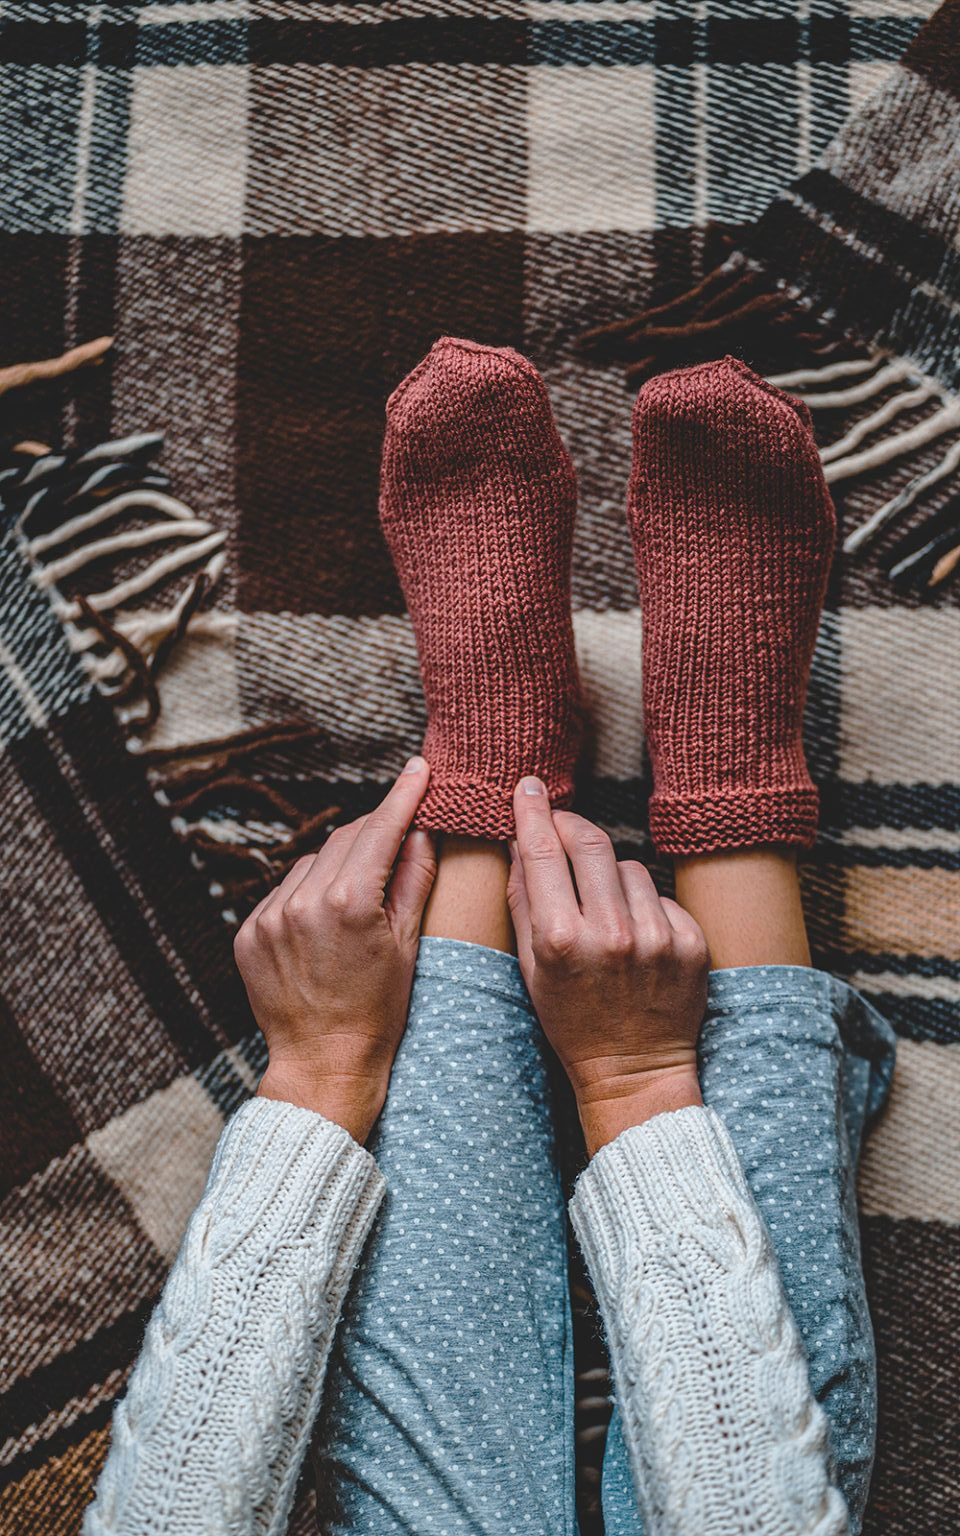 The Warmest Socks You Need This Winter – fashion